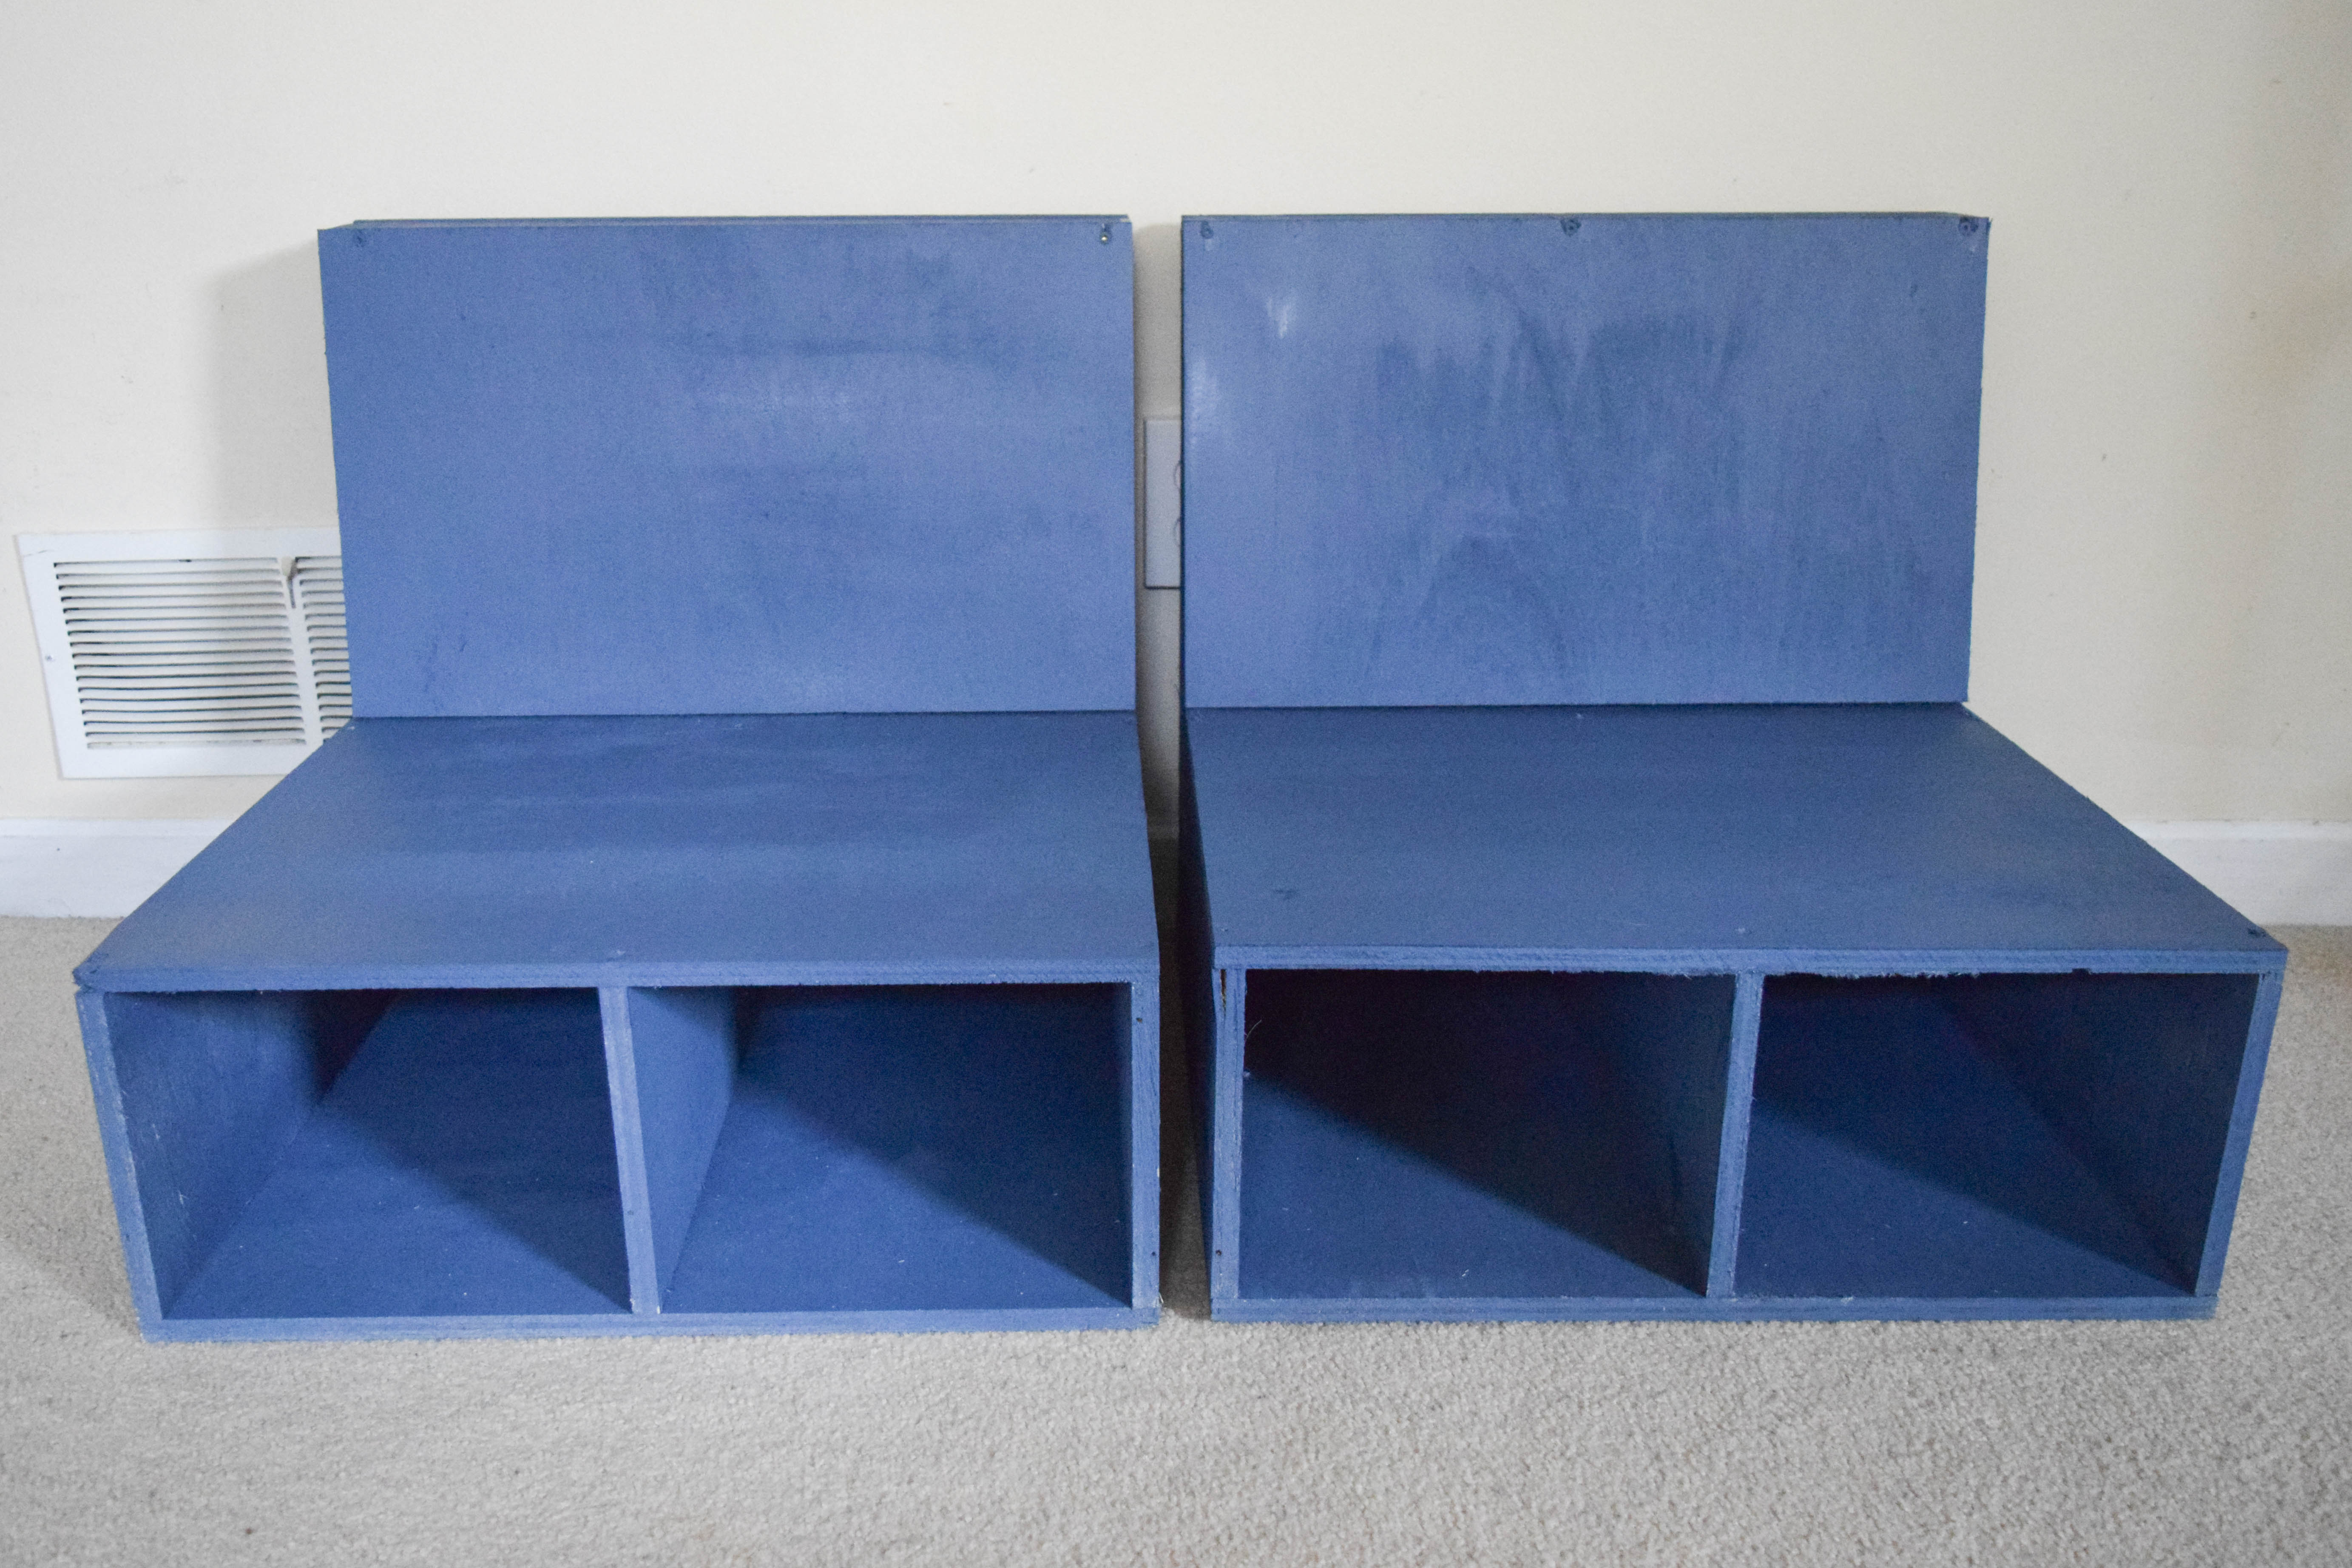 Easy steps to make DIY plywood kids chairs with storage • Our